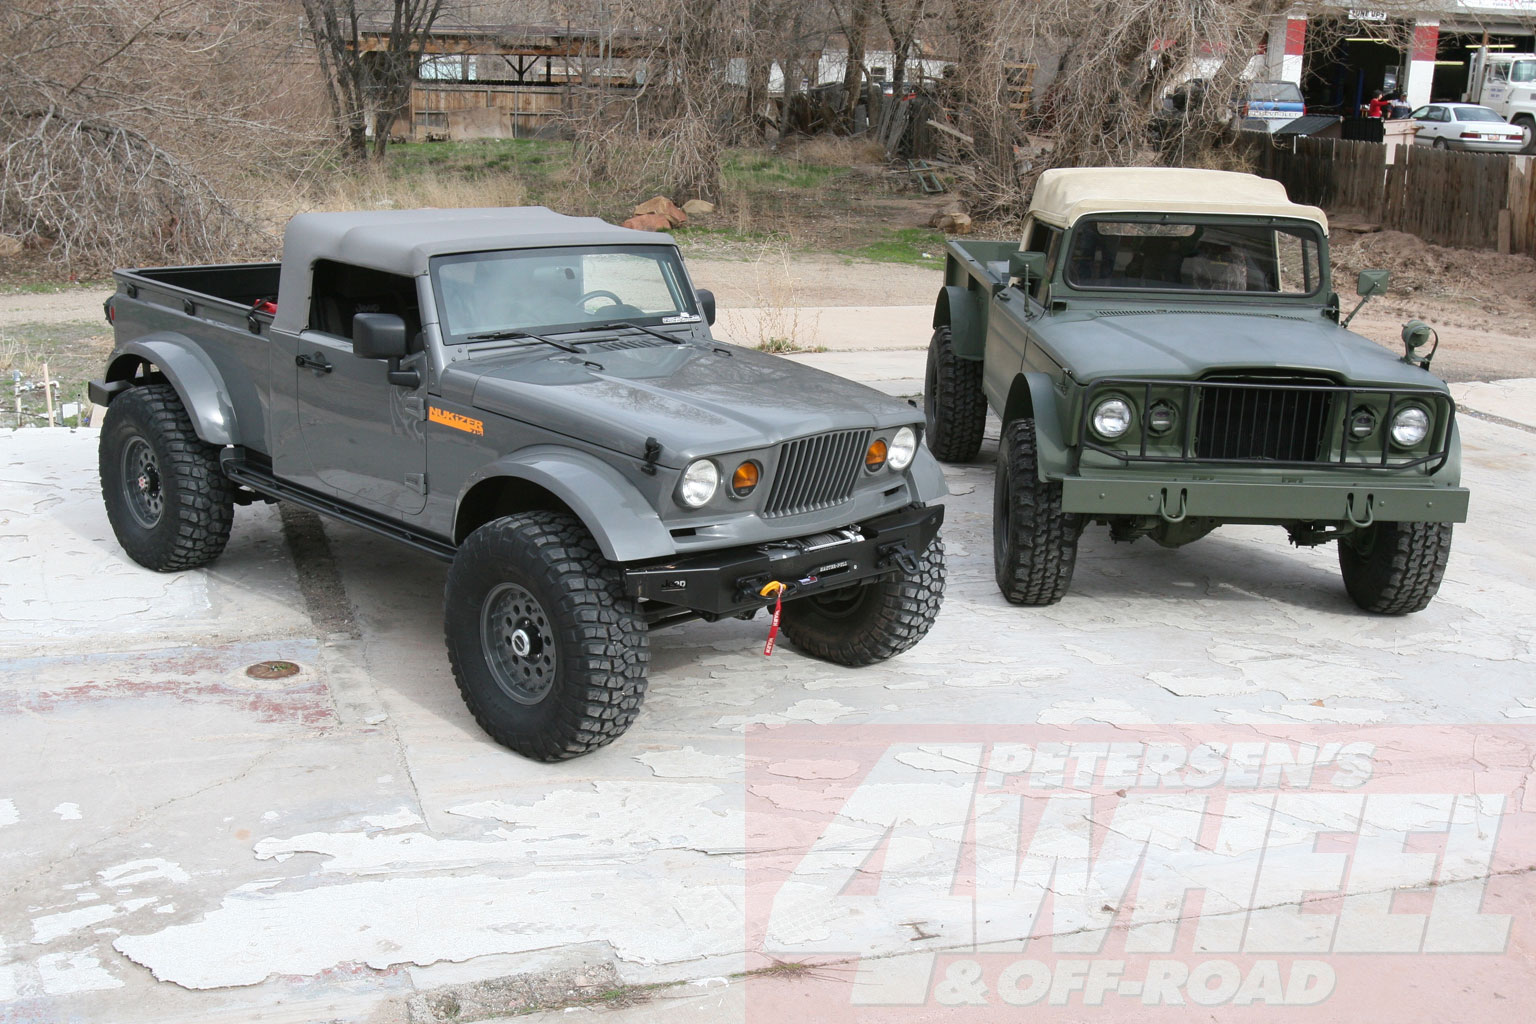 The M715 (along with some non military Jeep J10/J20 pick-ups) can be found